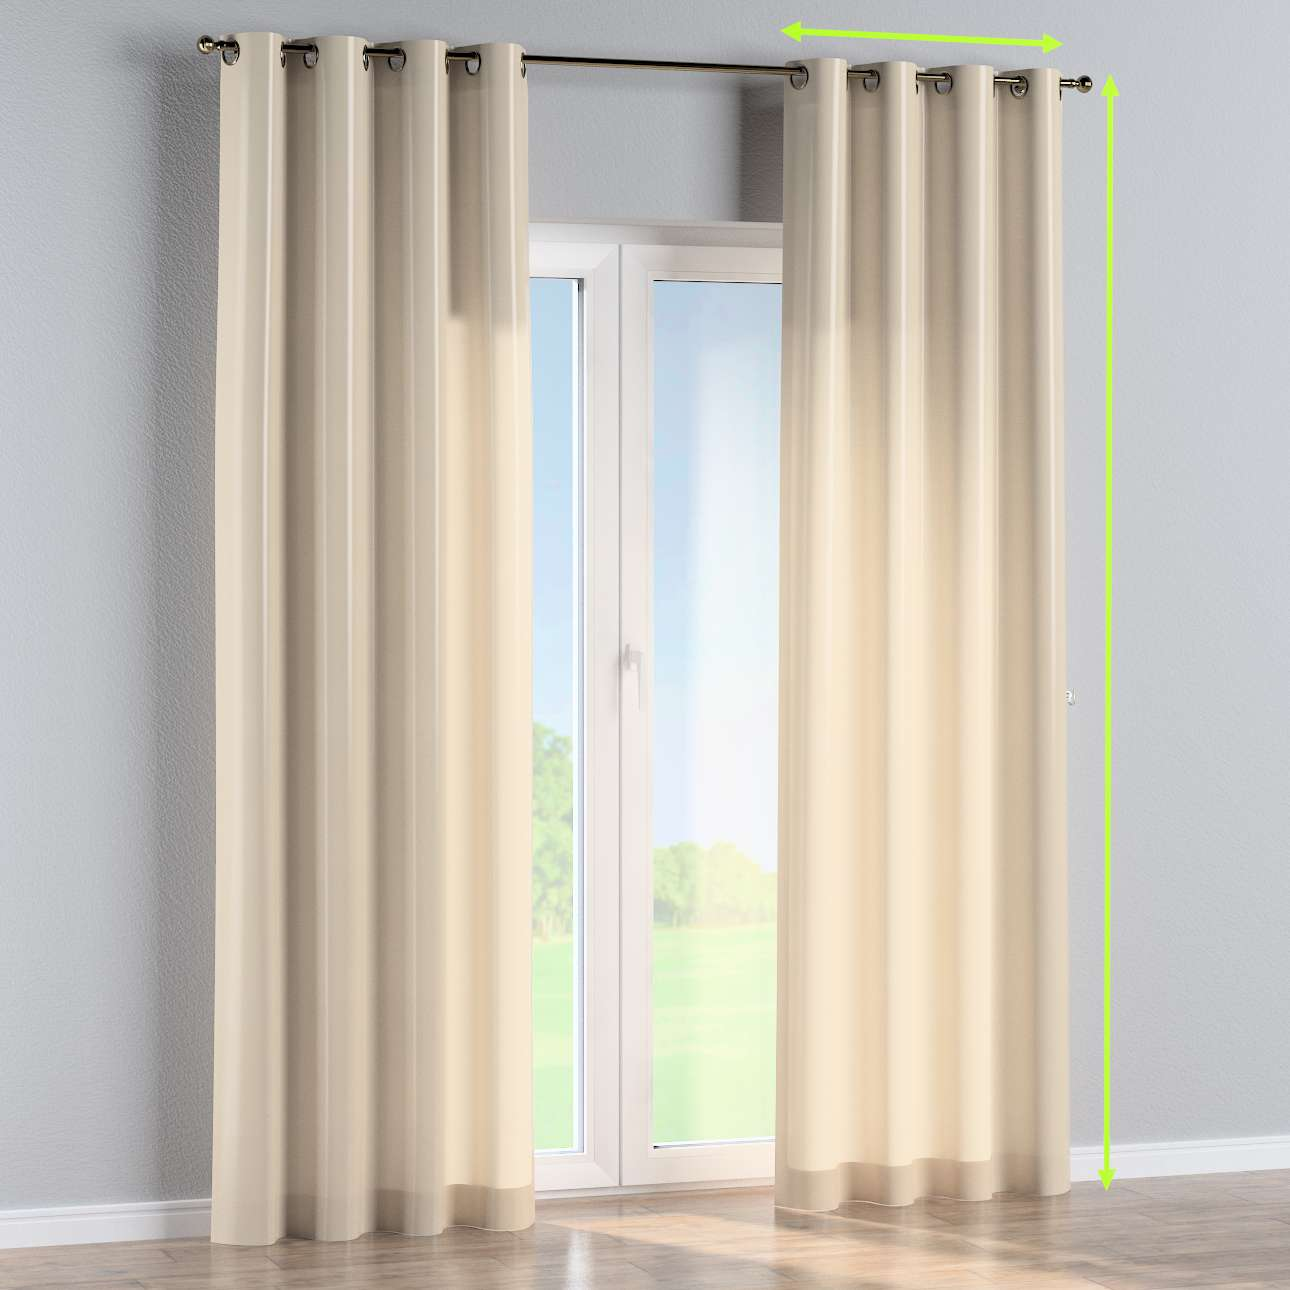 Eyelet curtain in collection Damasco, fabric: 141-73